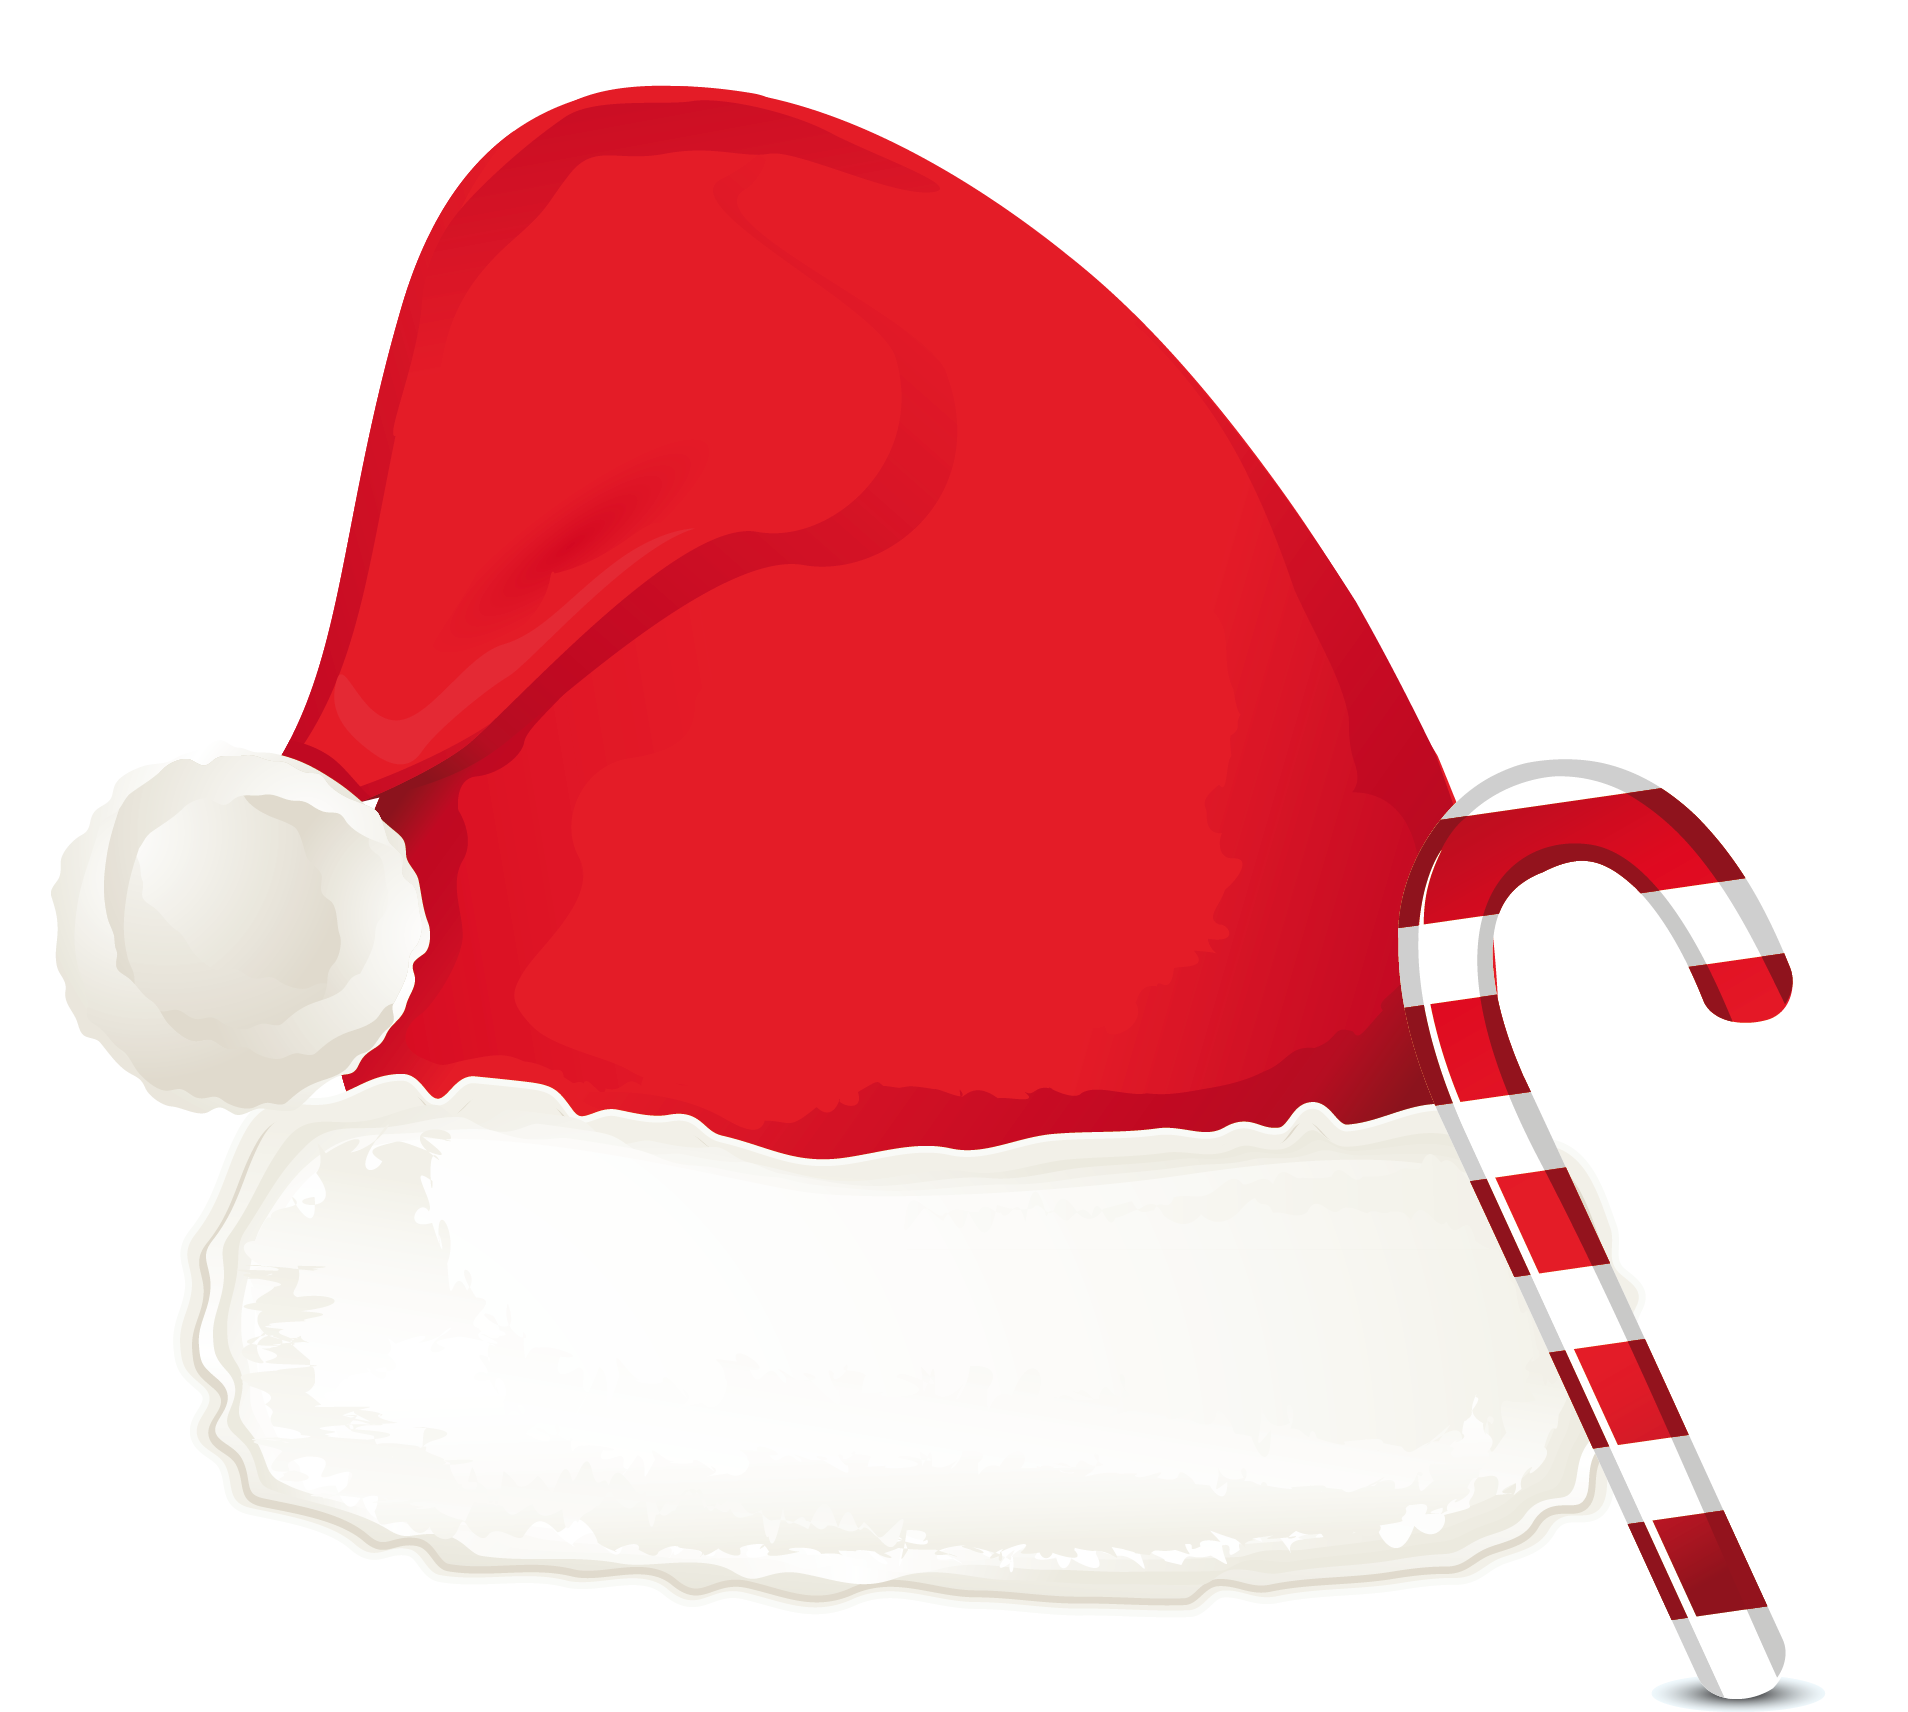 santa hat clipart with transparent background - photo #20